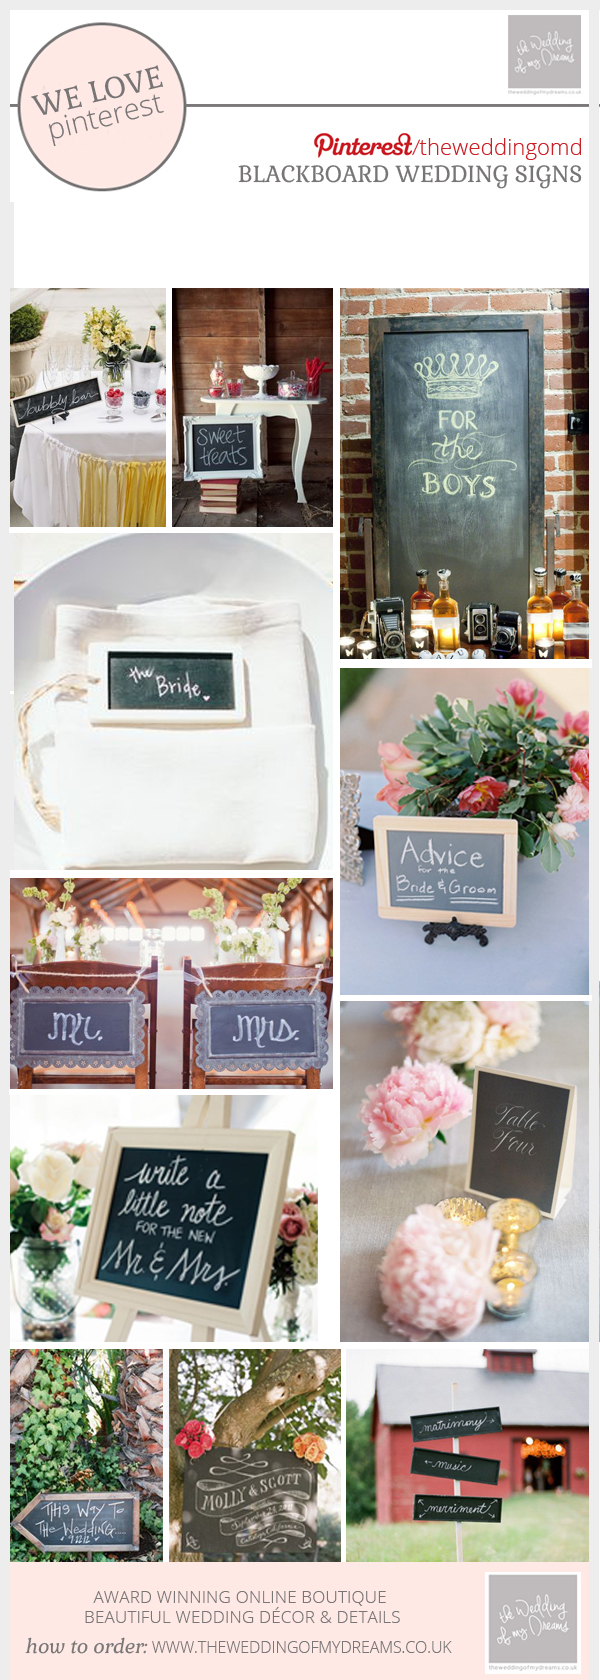 chalkboard wedding signs - blackboard wedding signs - ideas for your wedding